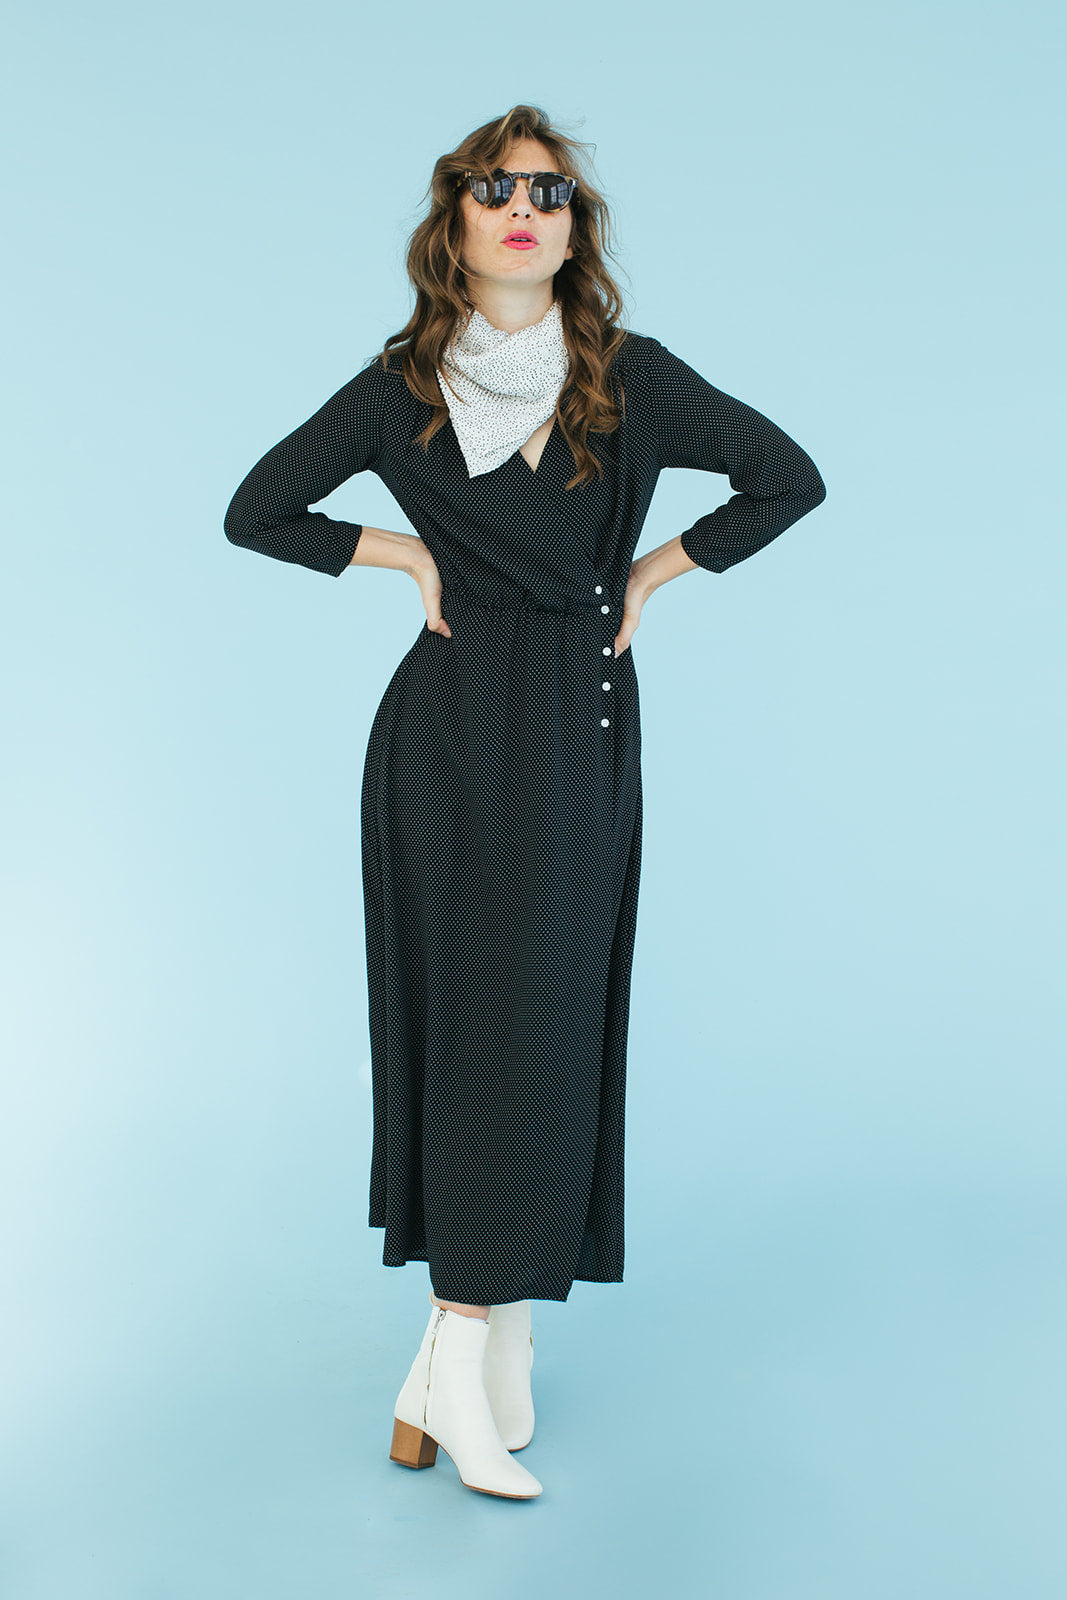 Sonnet James - ADALINE - BLACK DOT - Dress